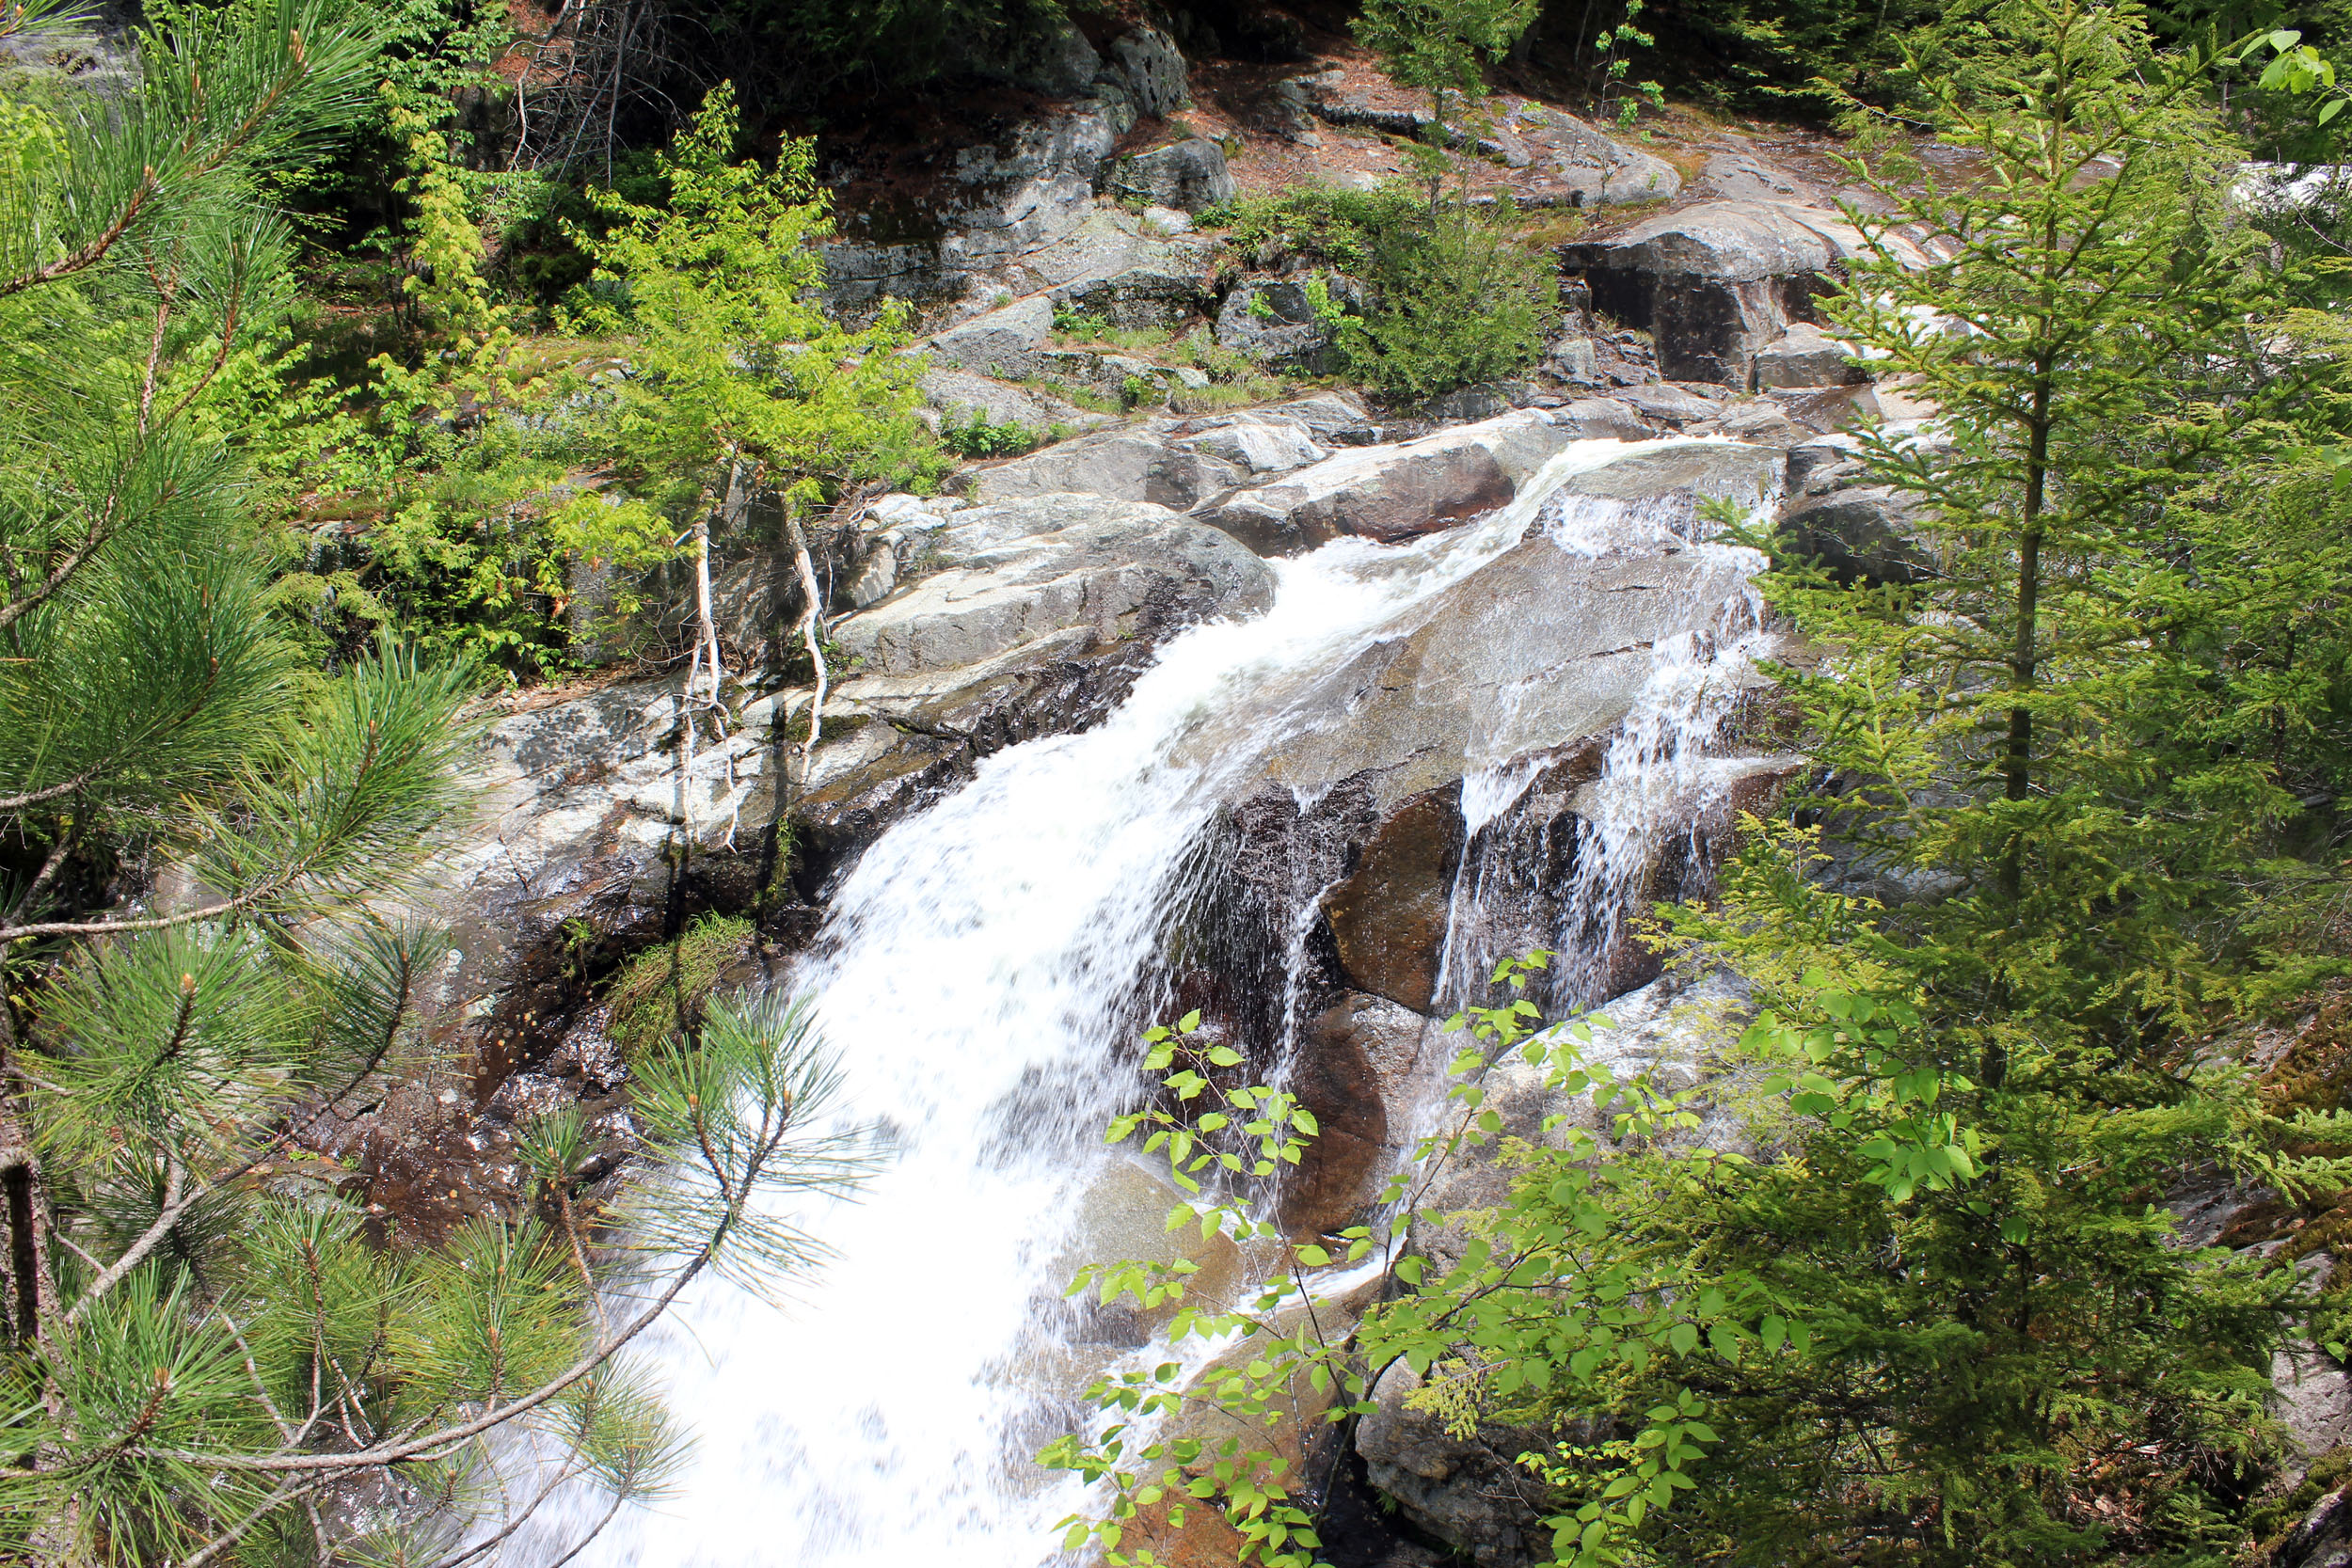 Top of the lower falls in the Adirondack Mountains, New